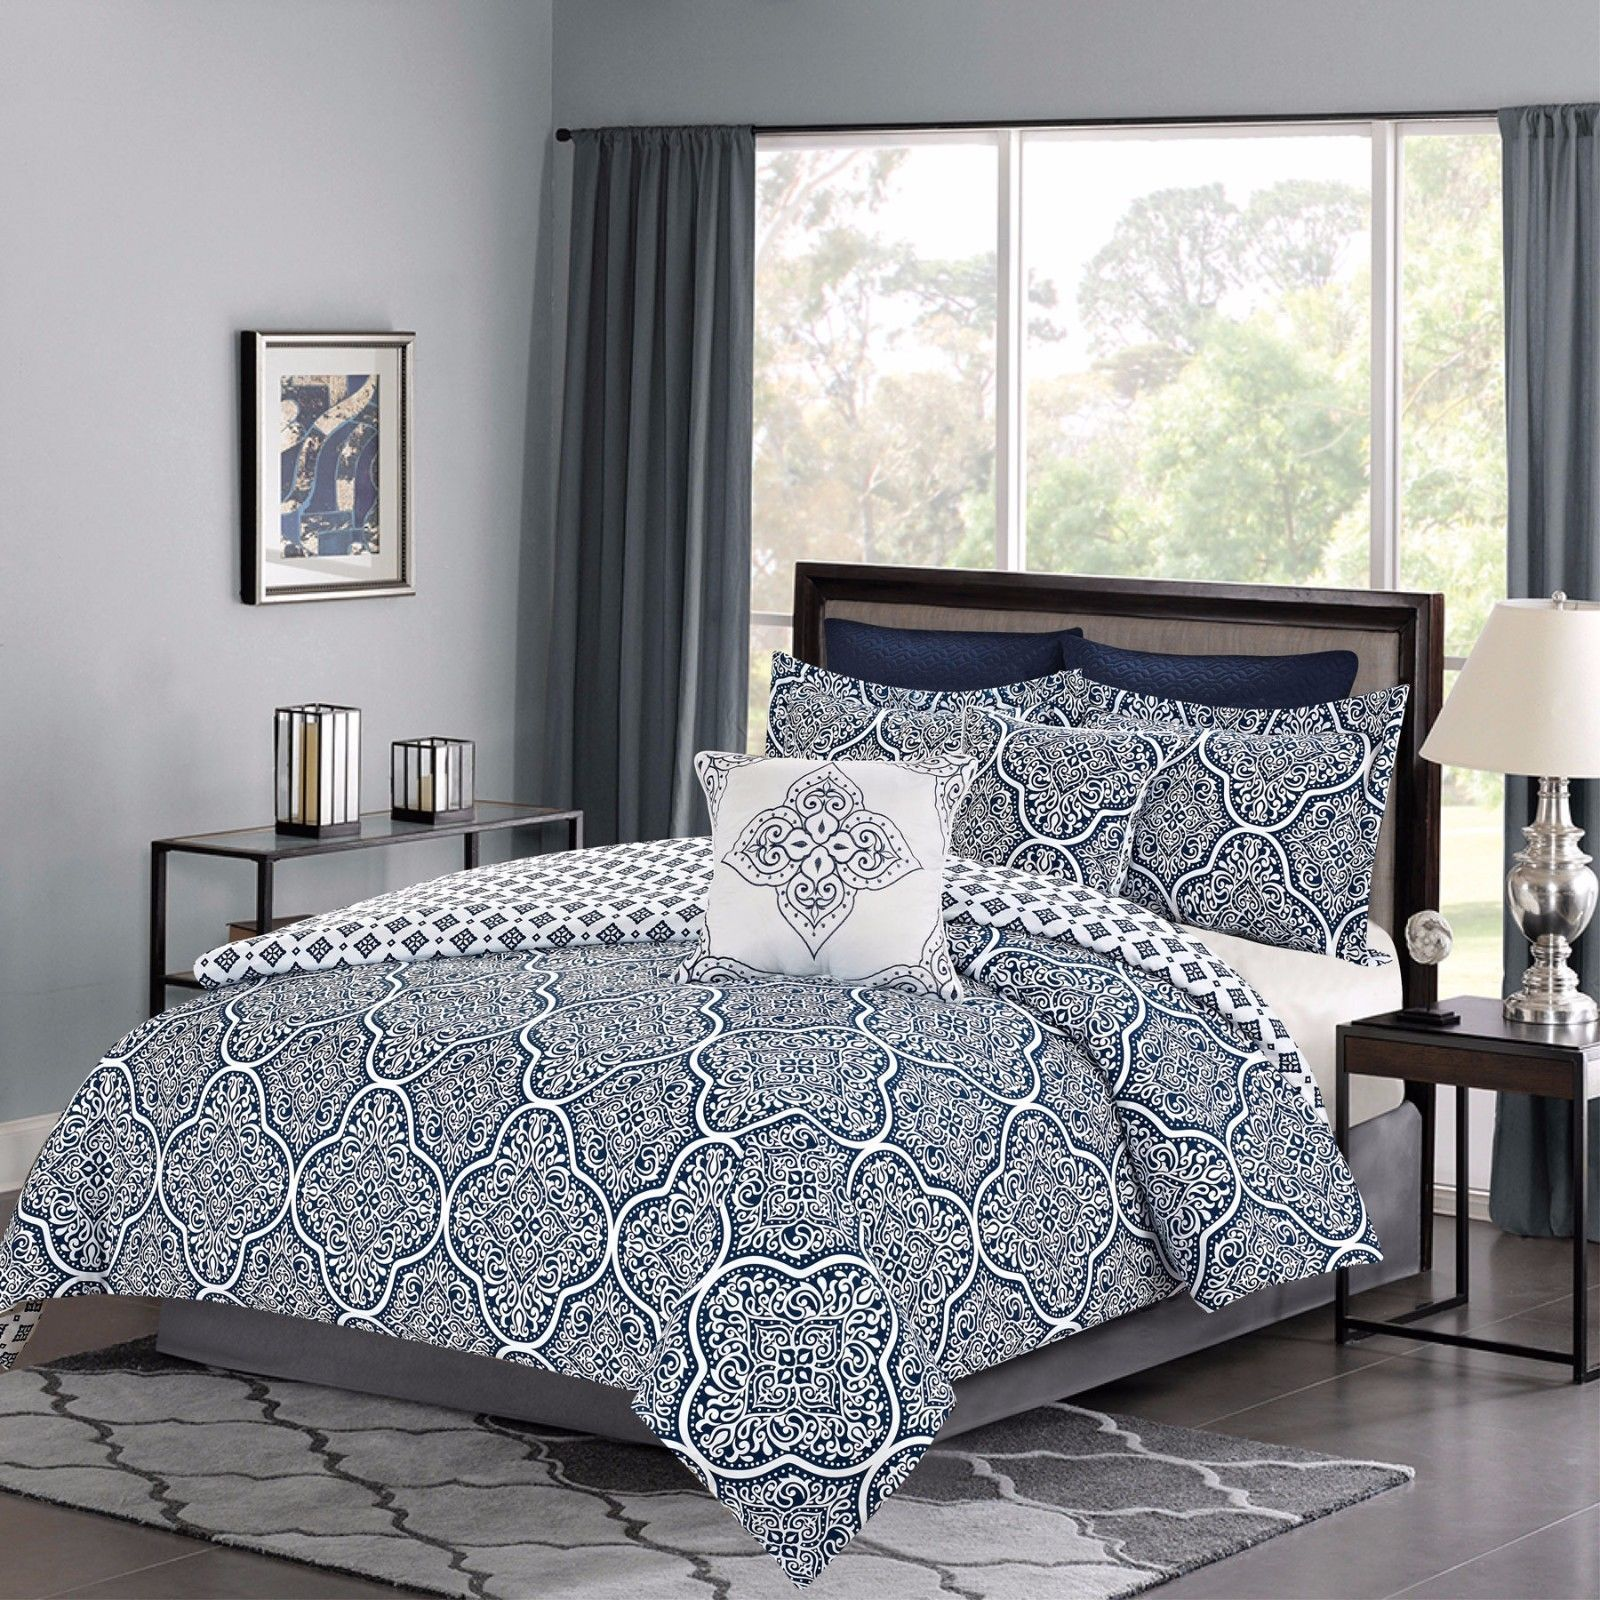 Bedding forter 7 Piece Queen or King Bed Set Navy Blue and White